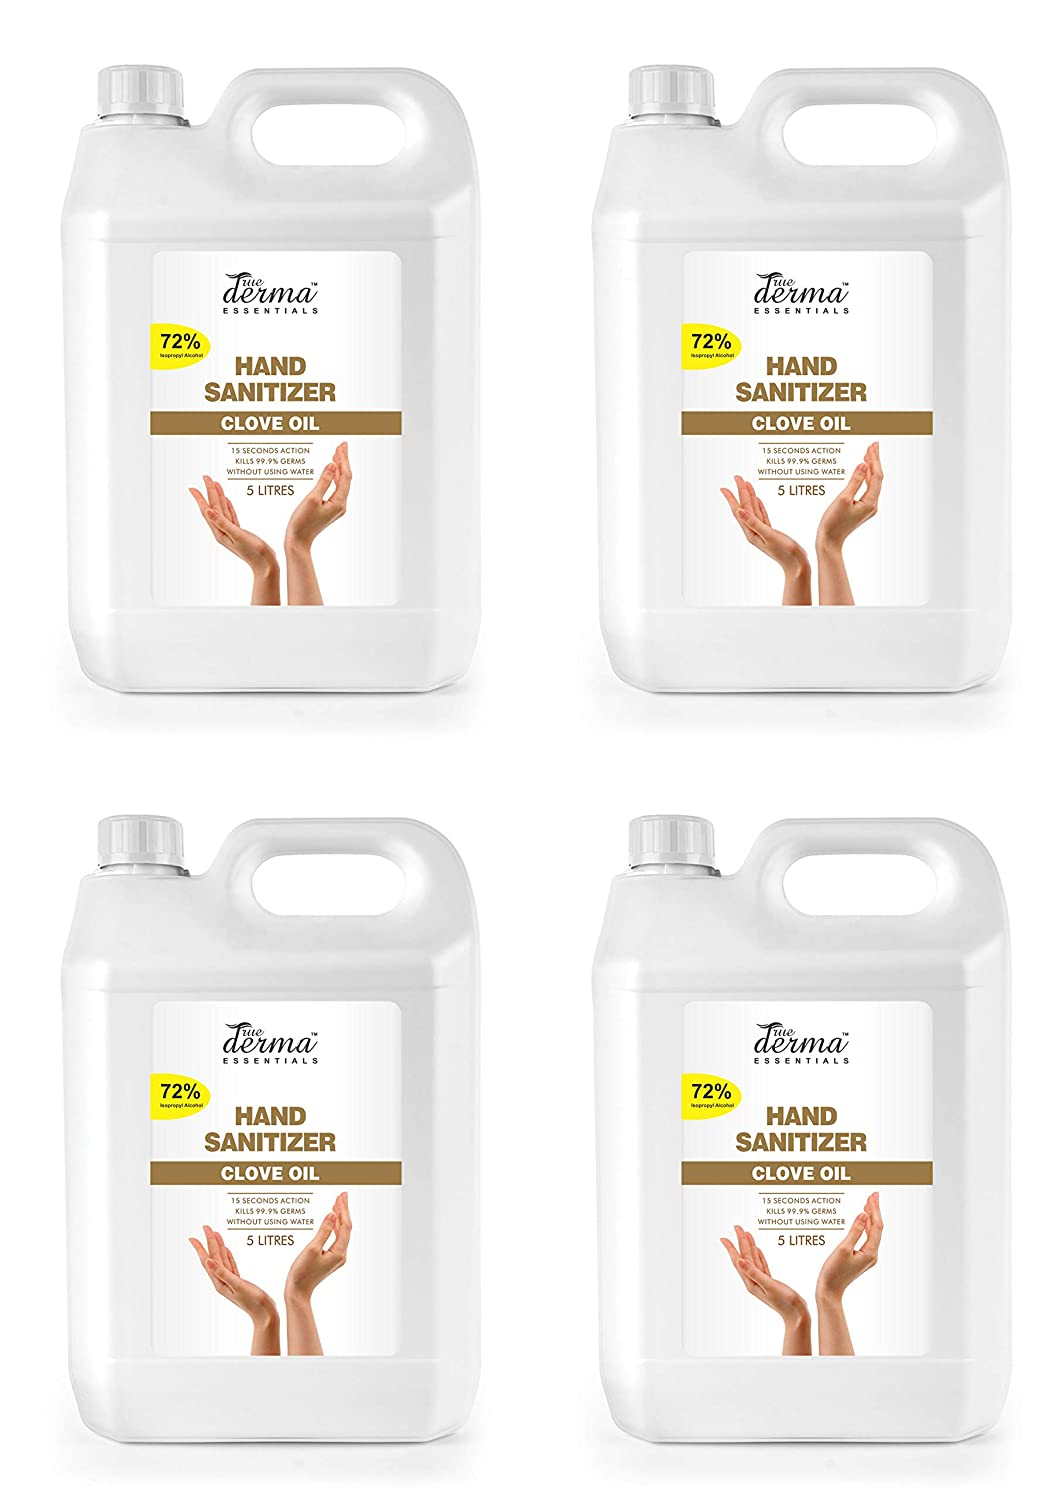 [Apply coupon] True Derma Essentials - 72% Isopropyl Alcohol Hand Sanitizer (Instant Dry, Rinse Free, Non-sticky) (Pack of 4)